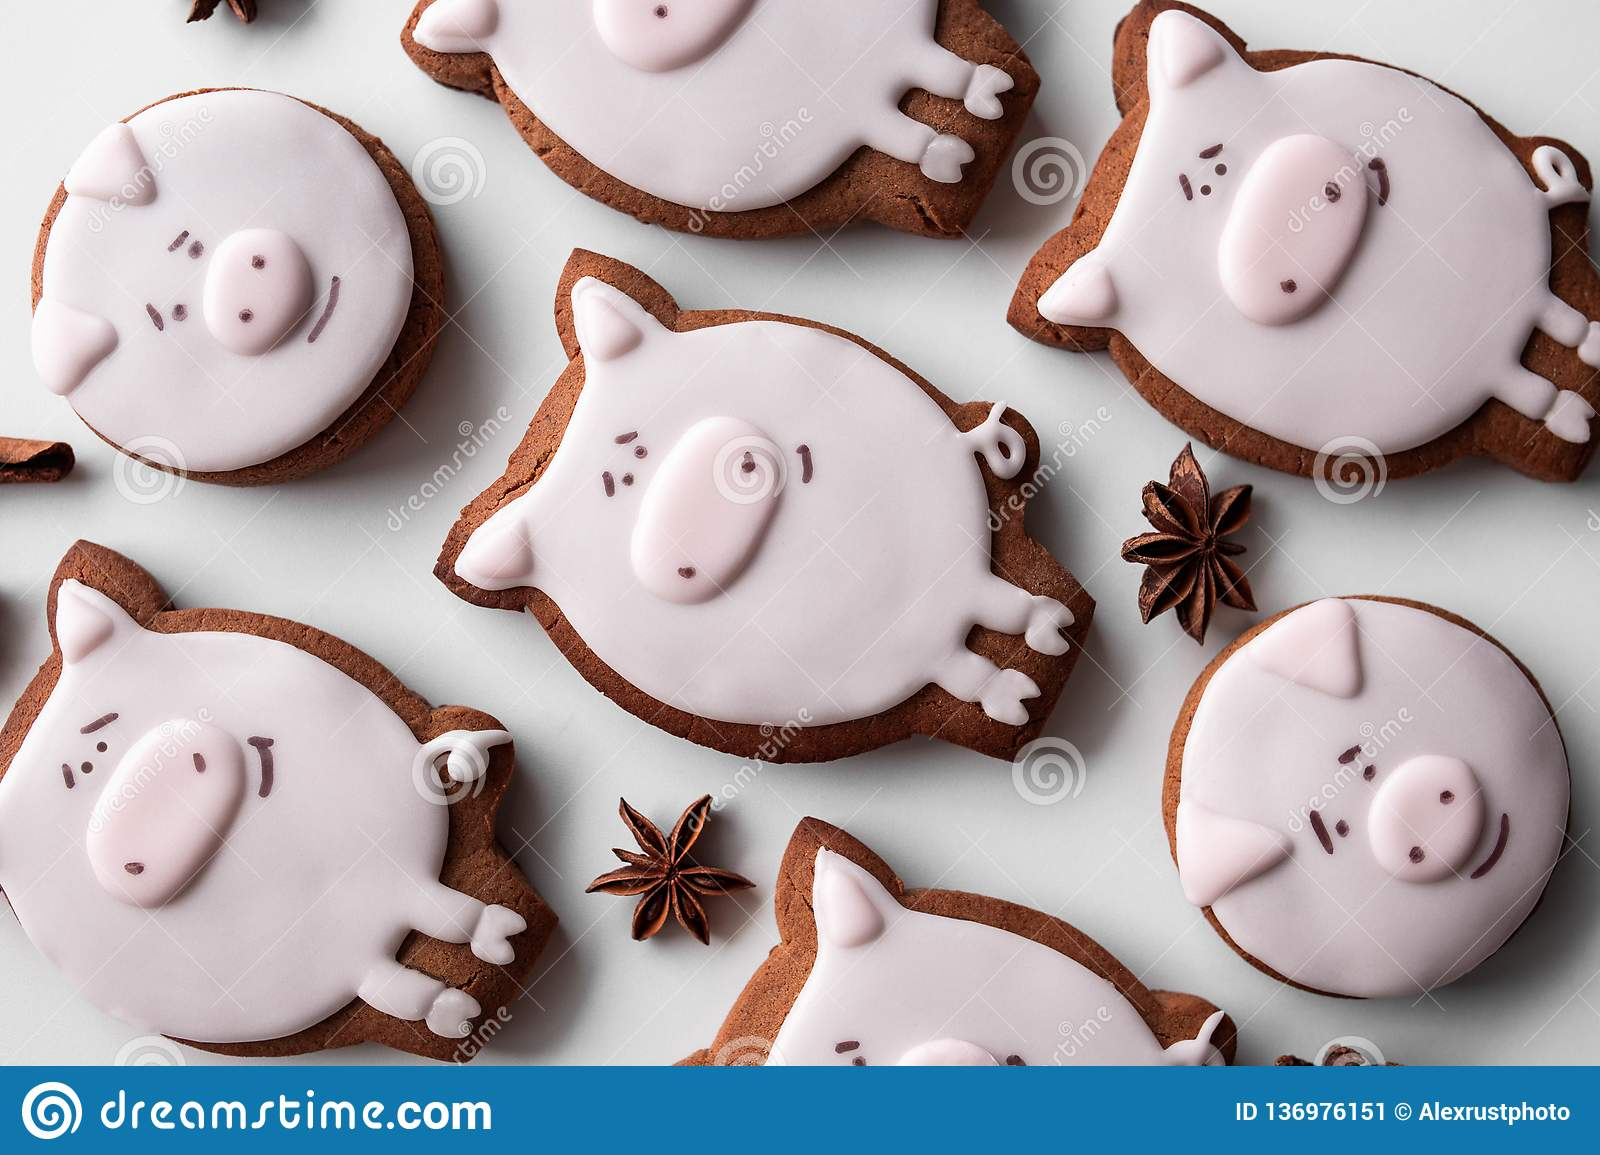 Delicious gingerbread cookies 2019 new year